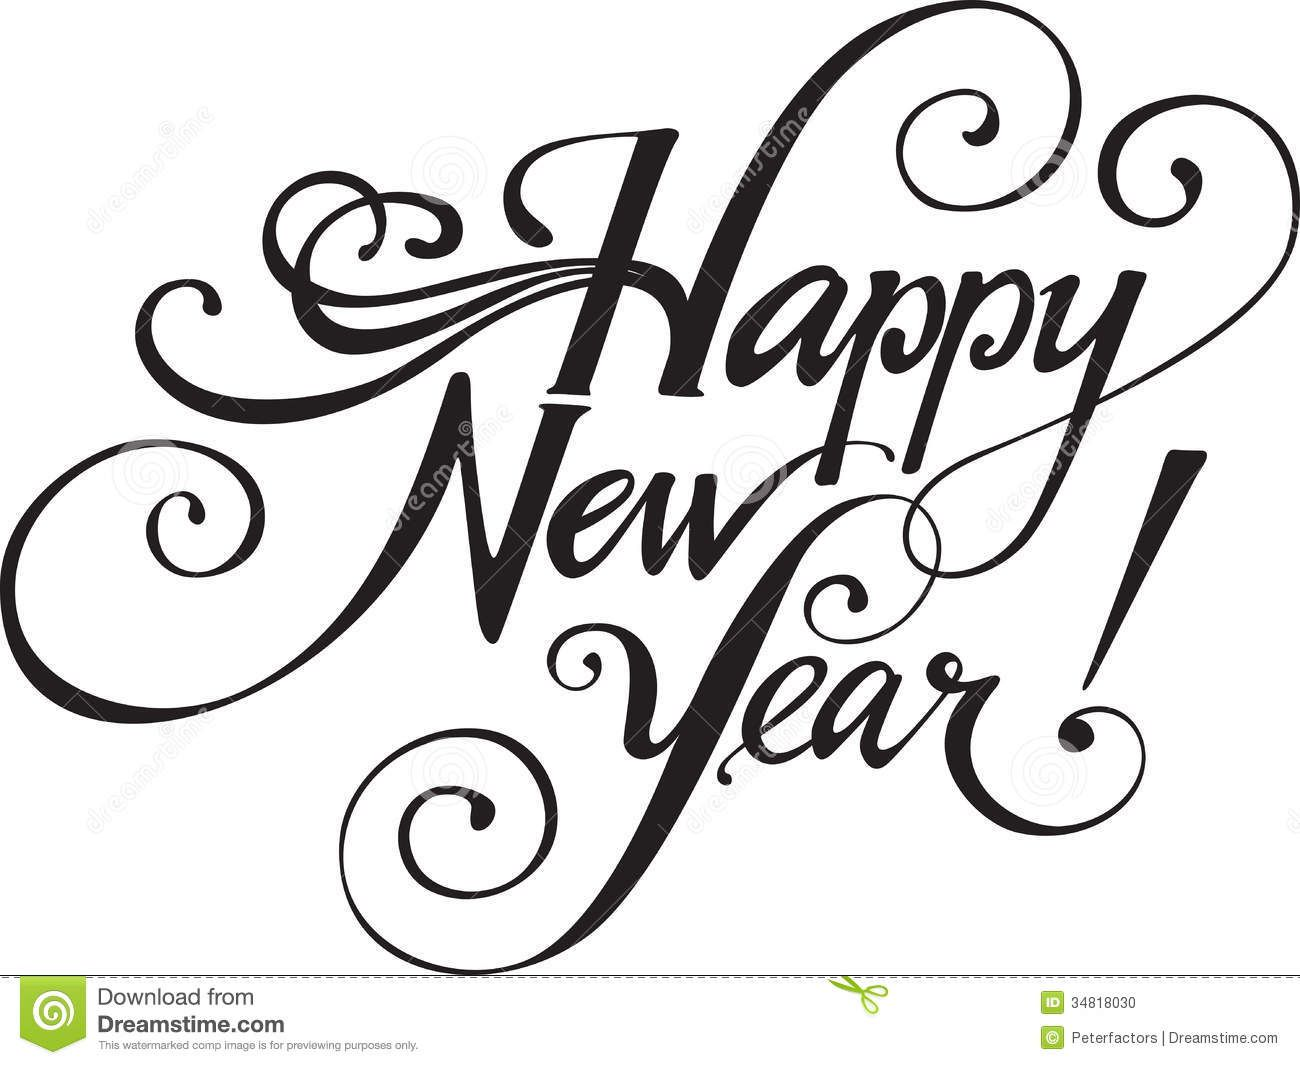 Free happy 2016 black & white clipart clip freeuse stock New Years 2016 Clipart | Free download best New Years 2016 Clipart ... clip freeuse stock